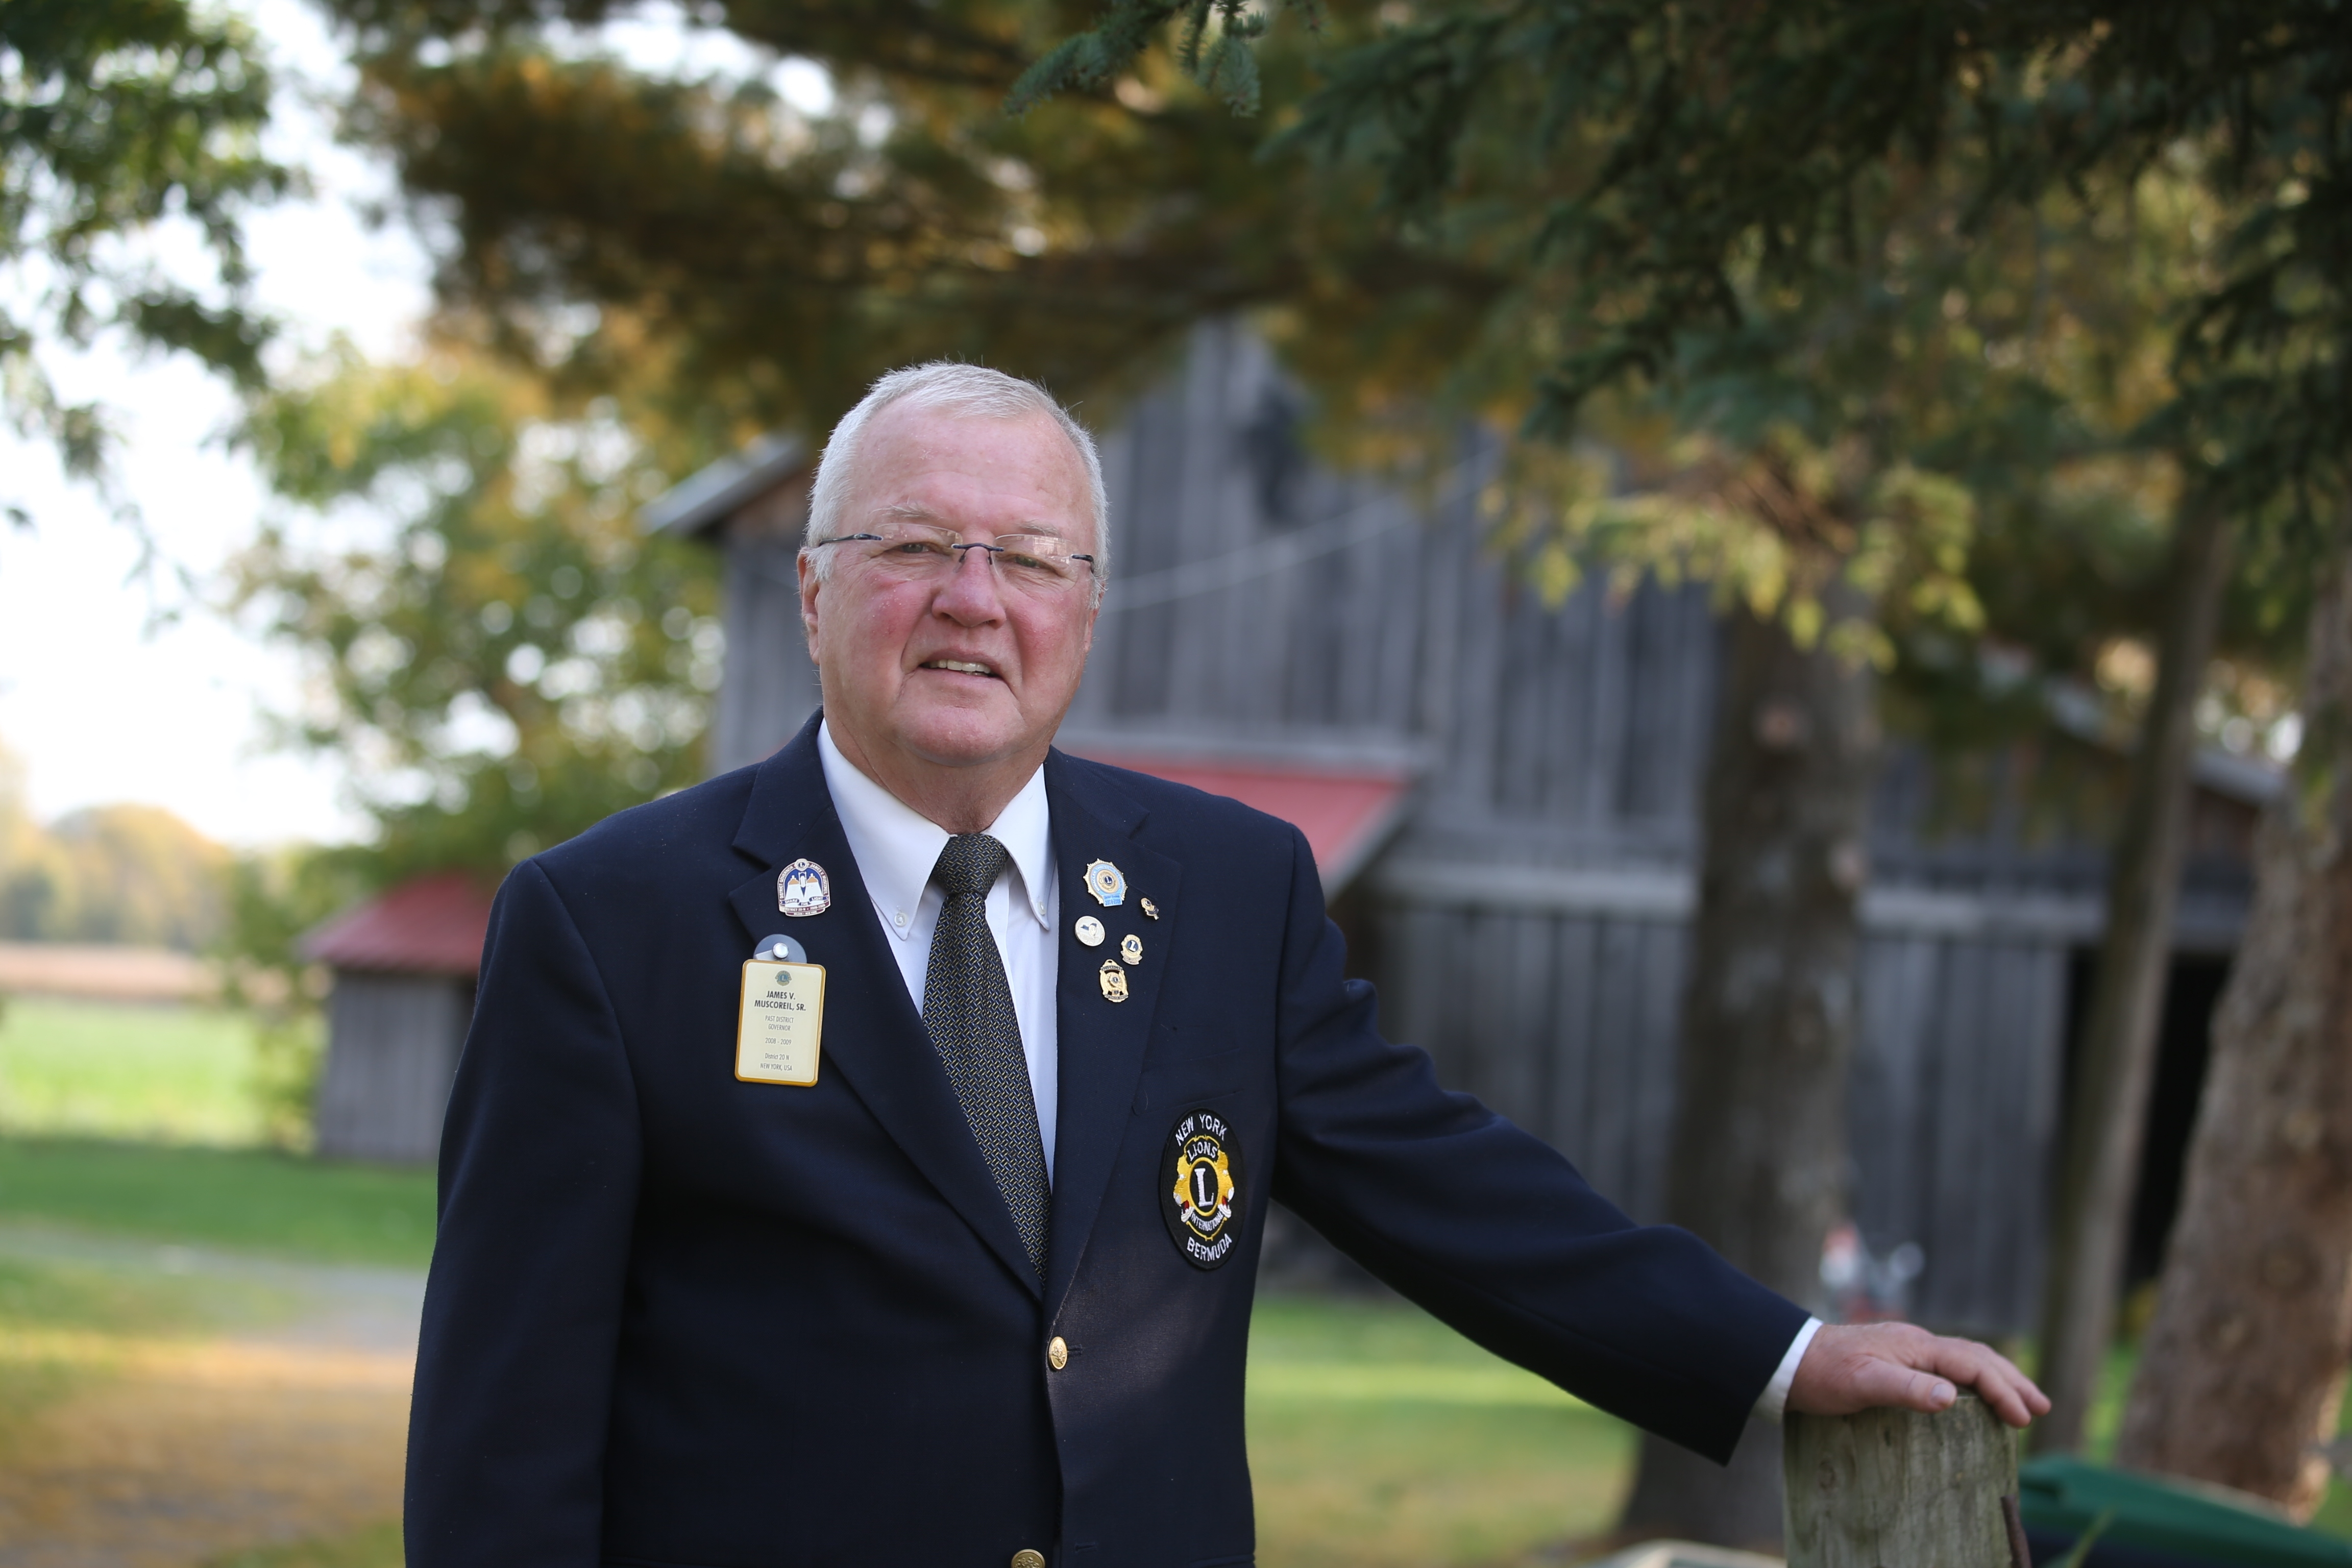 Jim Muscoreil, a retired Wilson resident, is a Lions Clubs International governor. (John Hickey/Buffalo News)